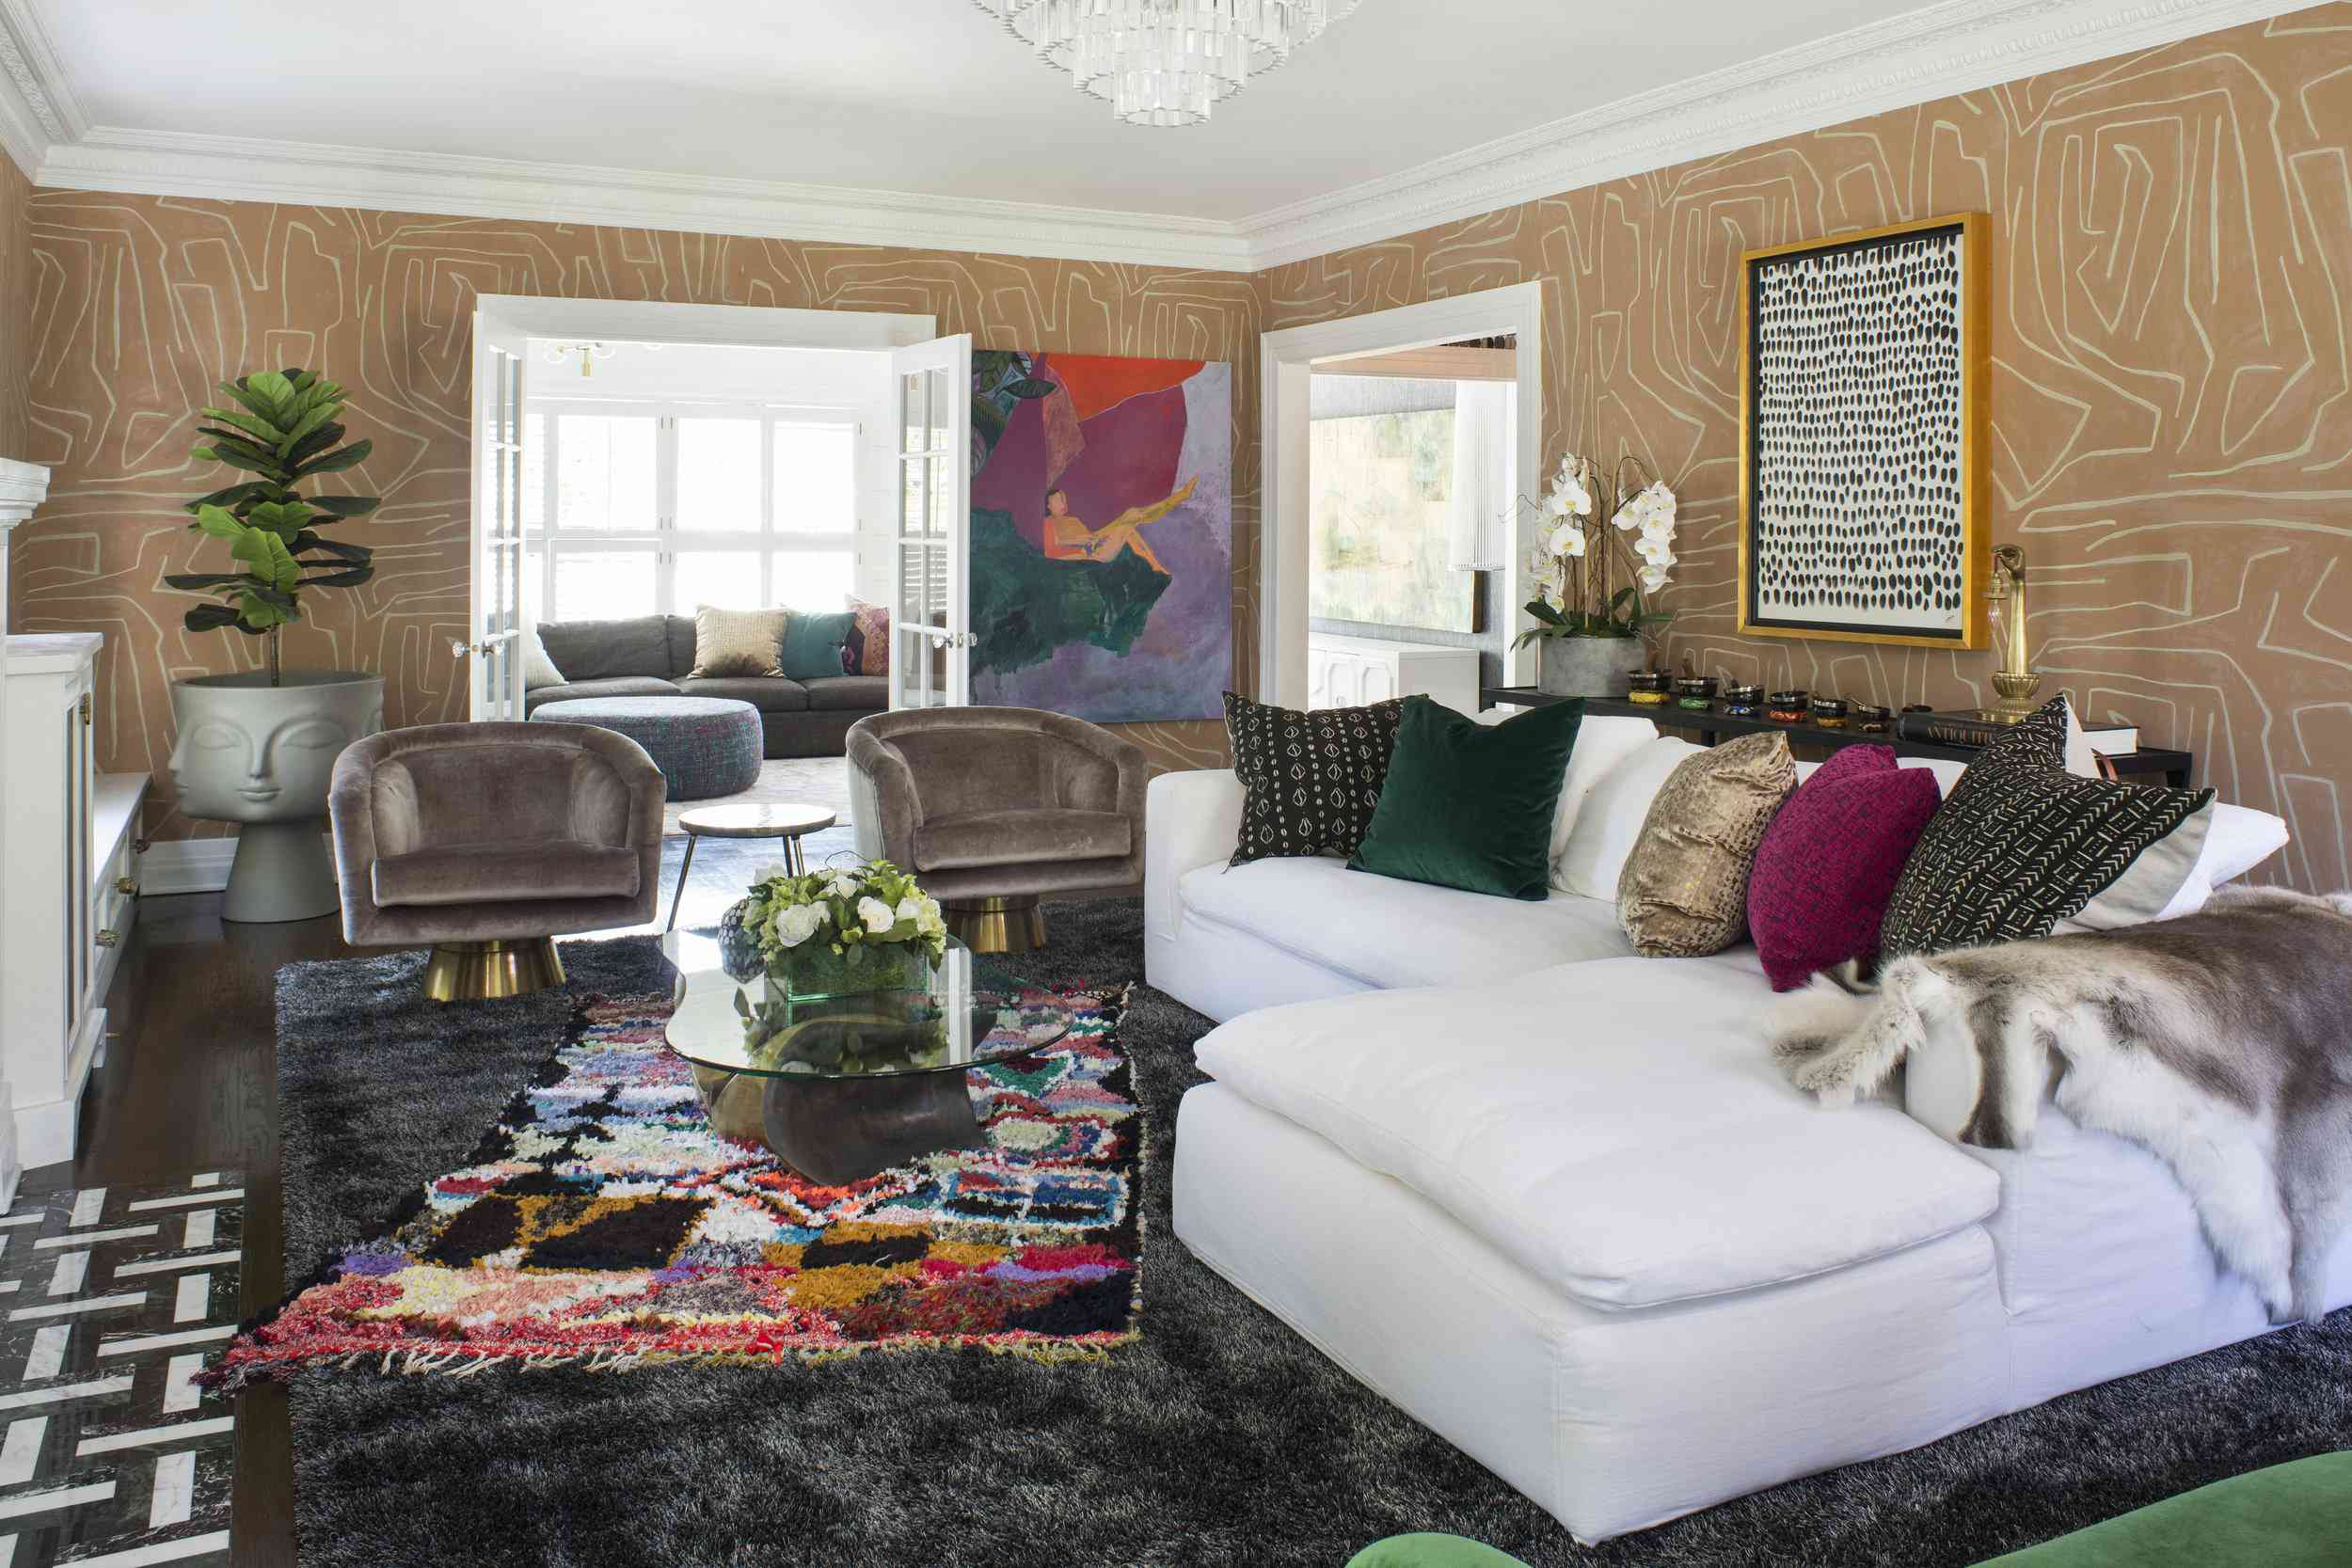 best living room ideas - maximalist living room with wallpaper and layered rugs